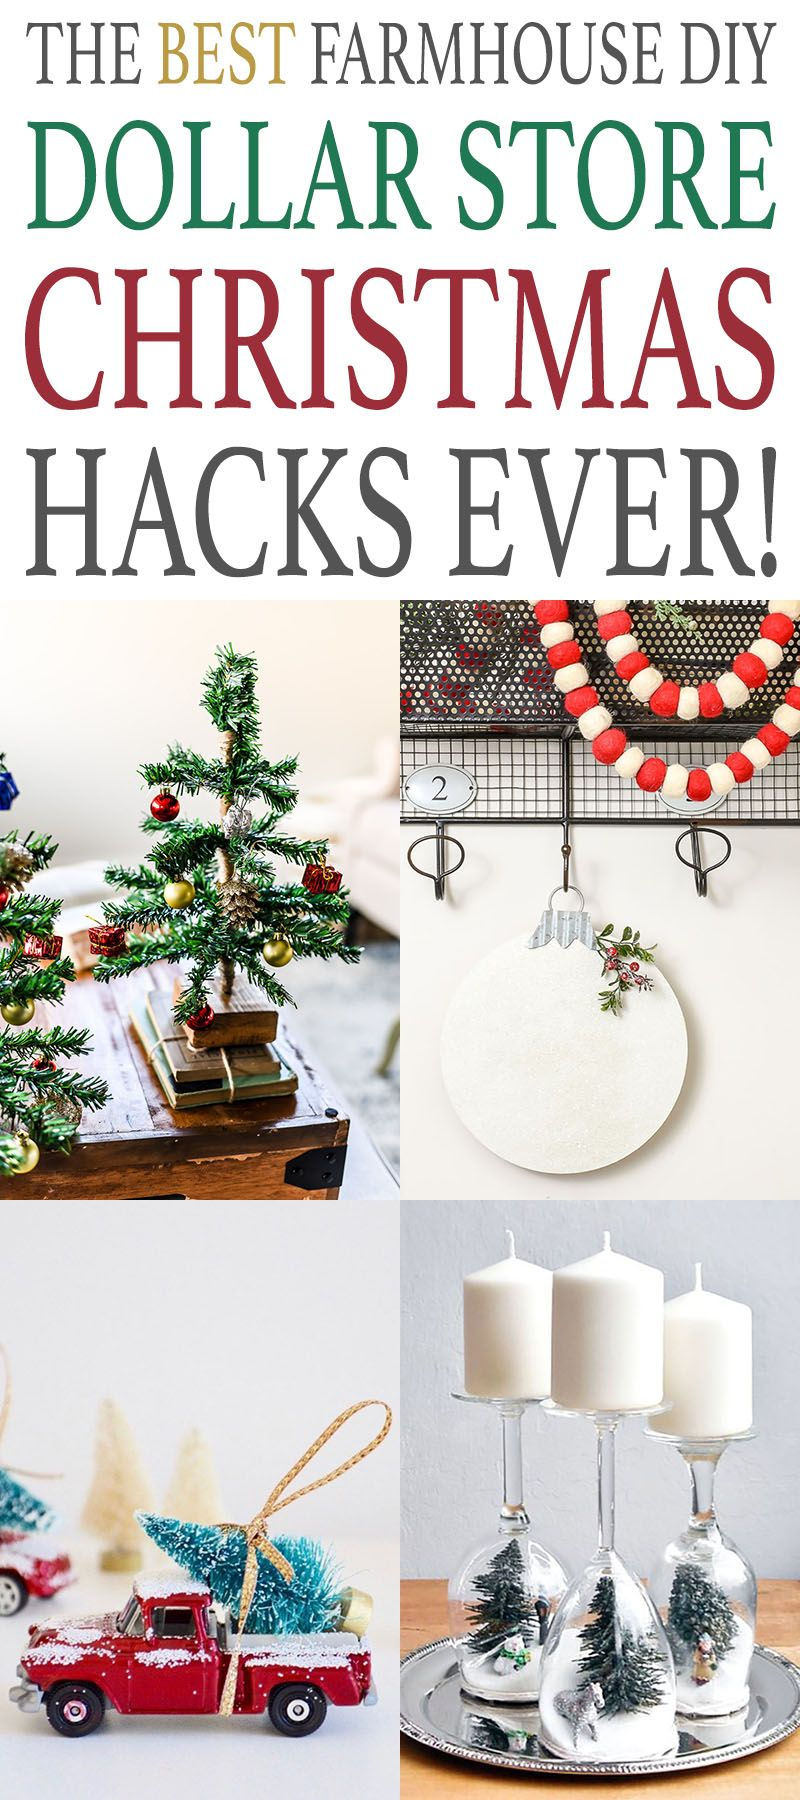 The Best Diy Farmhouse Dollar Store Christmas Hacks Ever Dollar Store Christmas Christmas Hacks Christmas Decorations